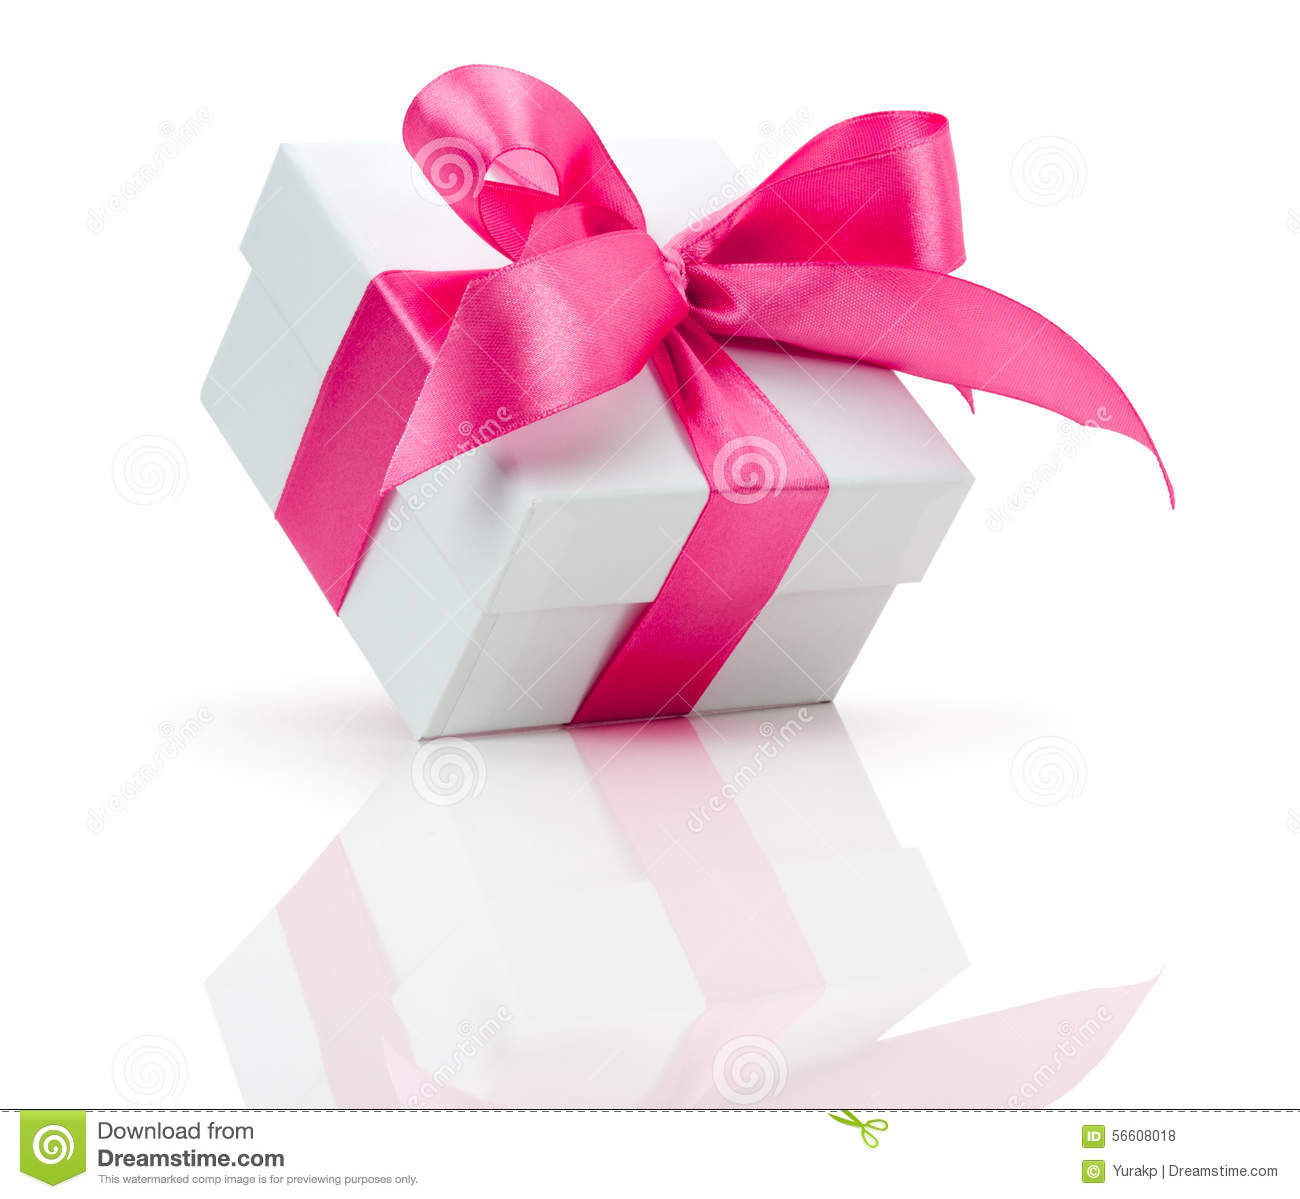 Gift box with pink bow isolated on the white background